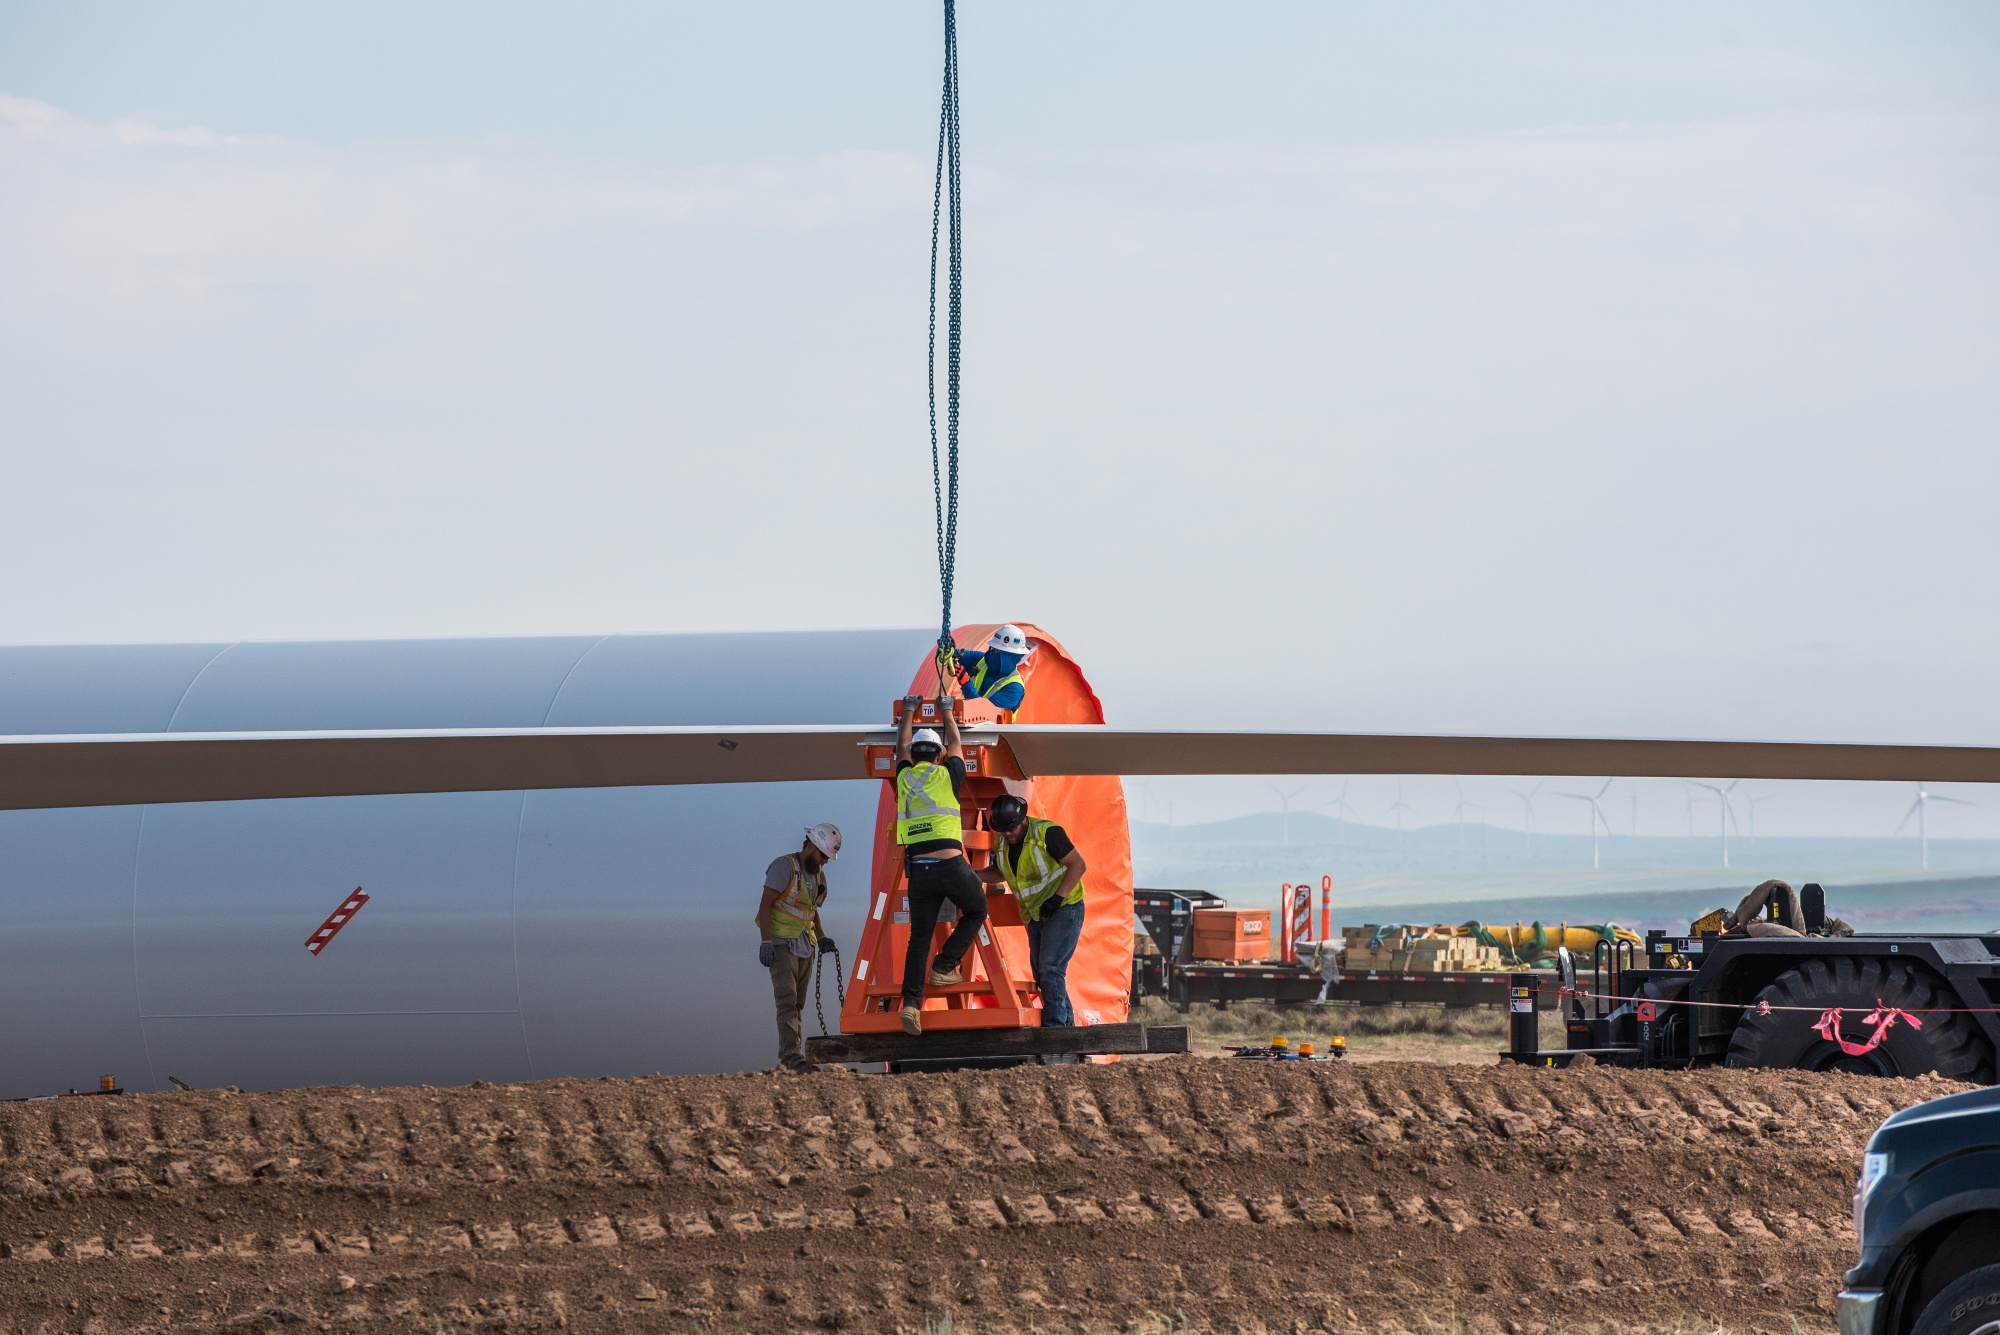 Construction workers unload a turbine blade at a wind farm in Encino, New Mexico.